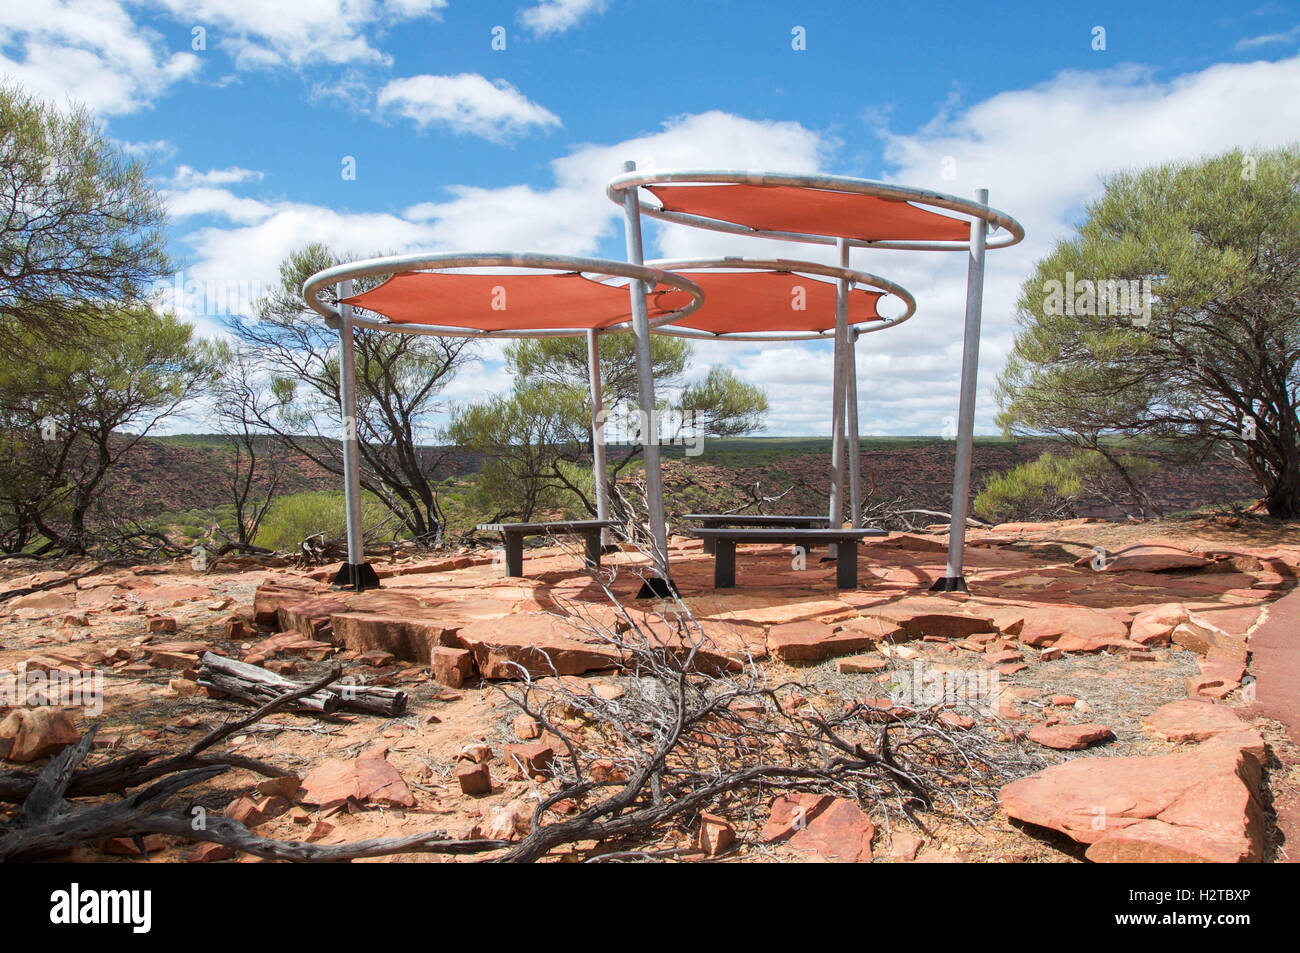 Modern Sun Shade With Benches At Kalbarri National Park